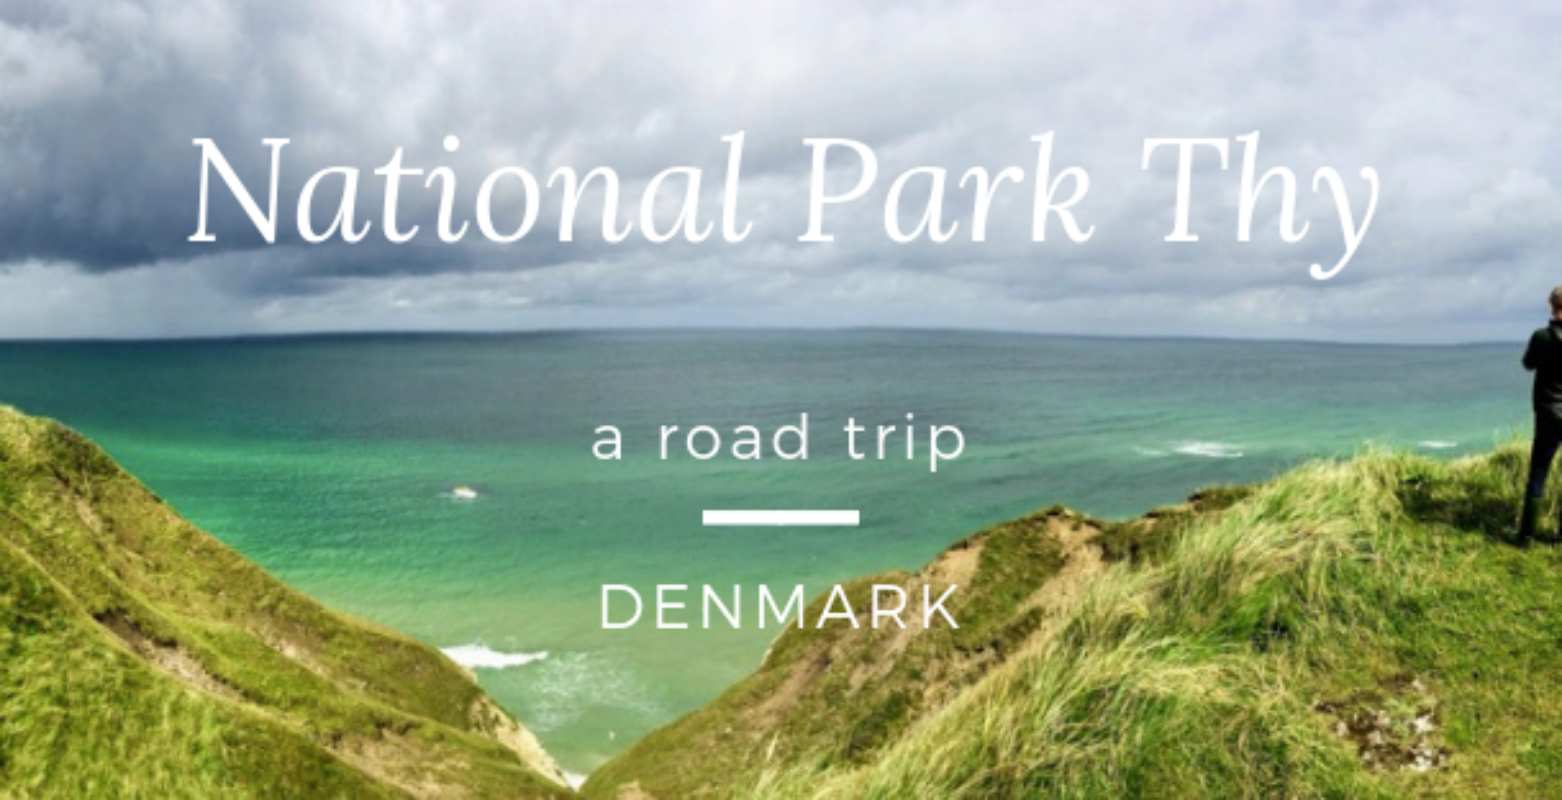 Denmark – Roadtrip through National Park Thy